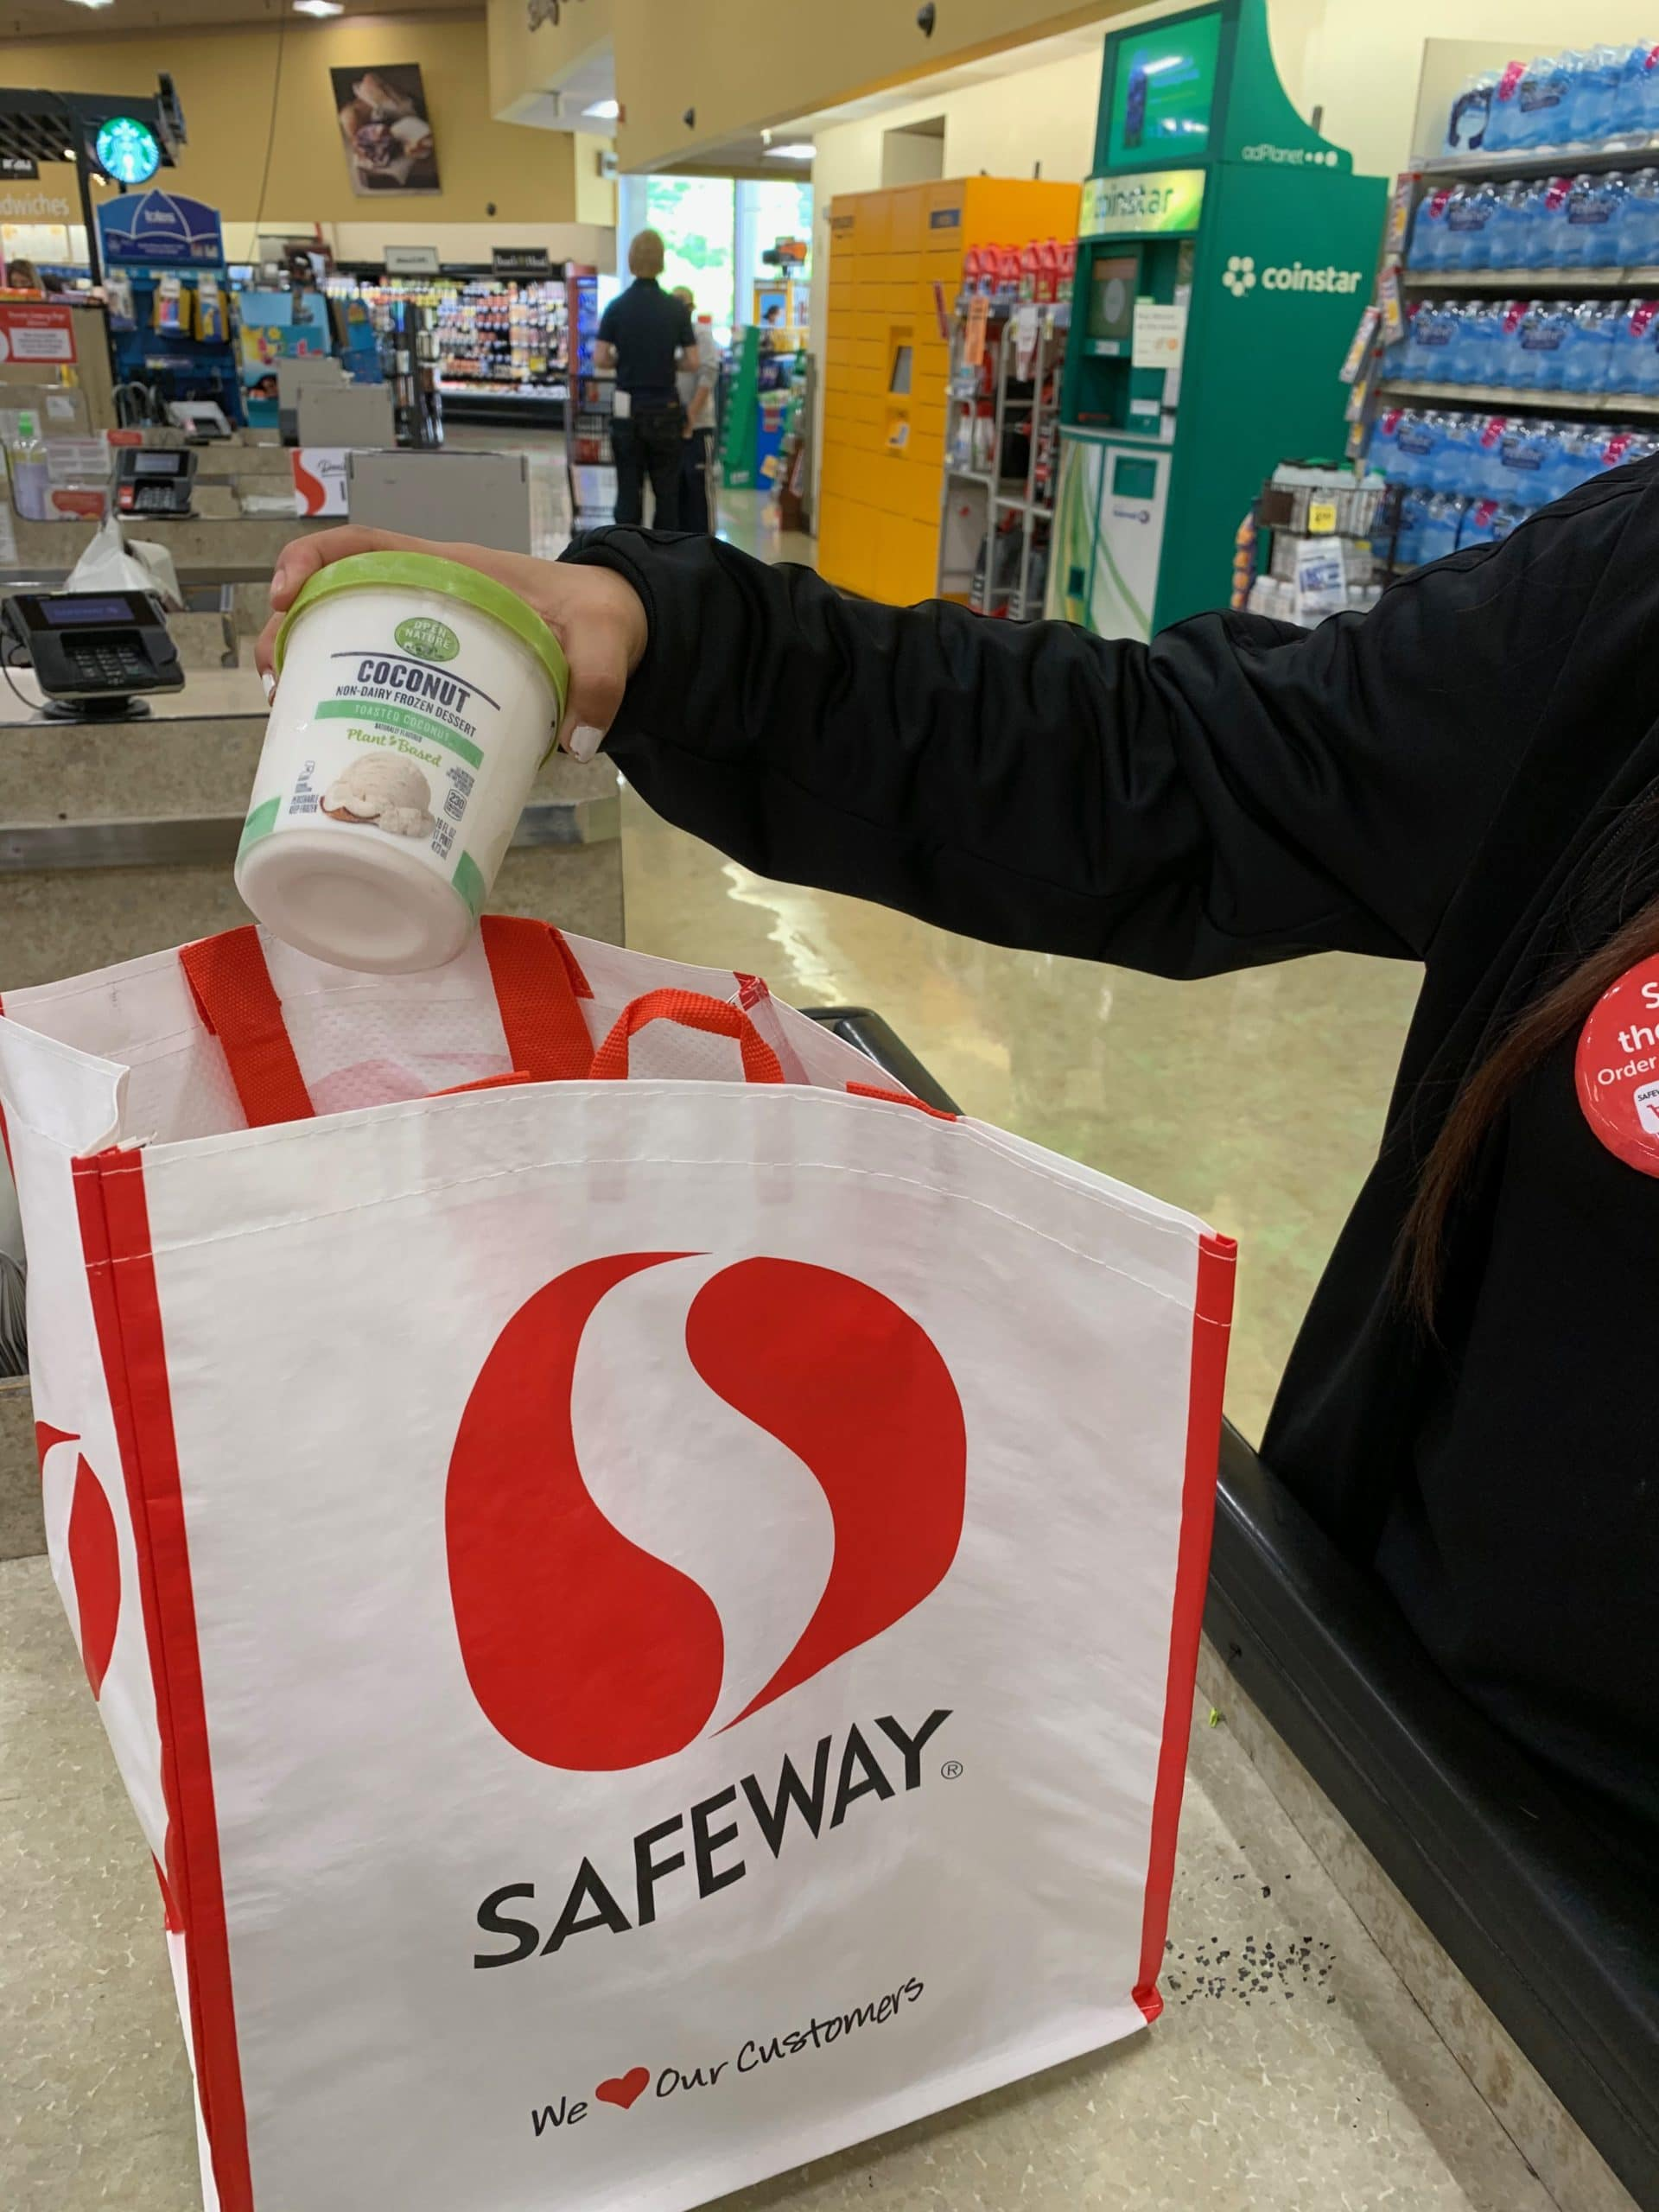 Adding product to the Safeway bag